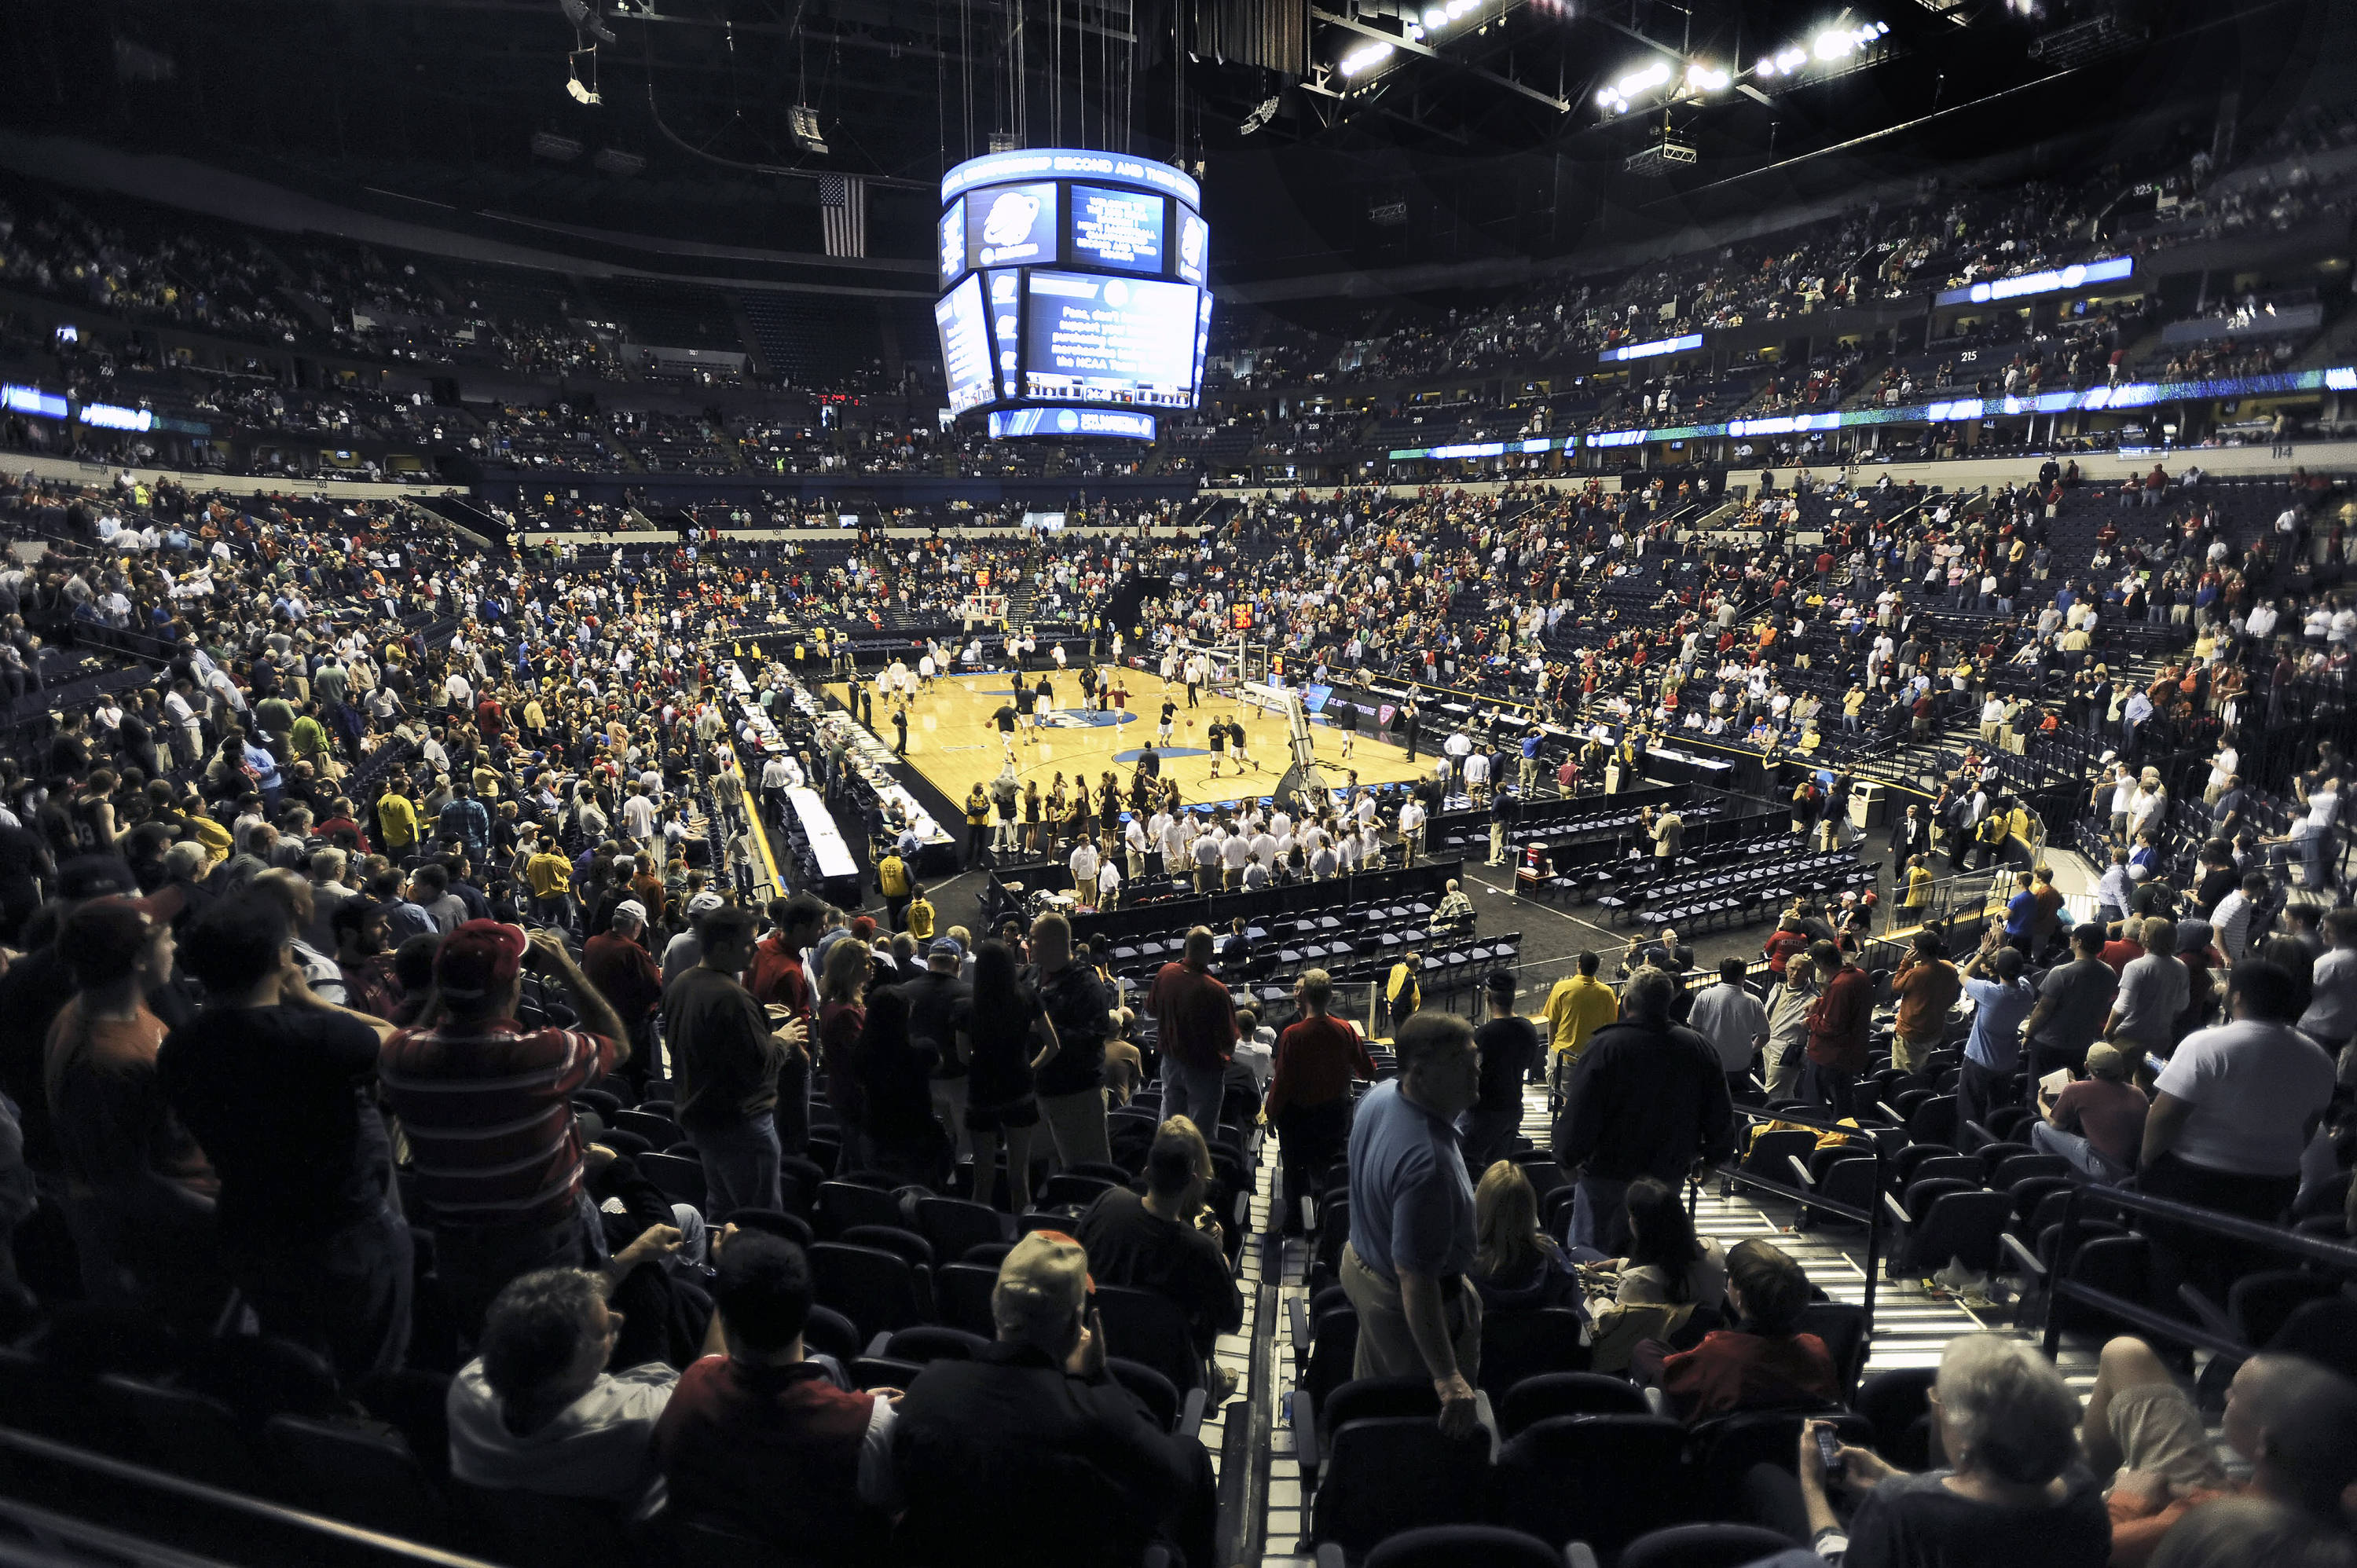 A look at the crowd inside the Bridgestone Arena.